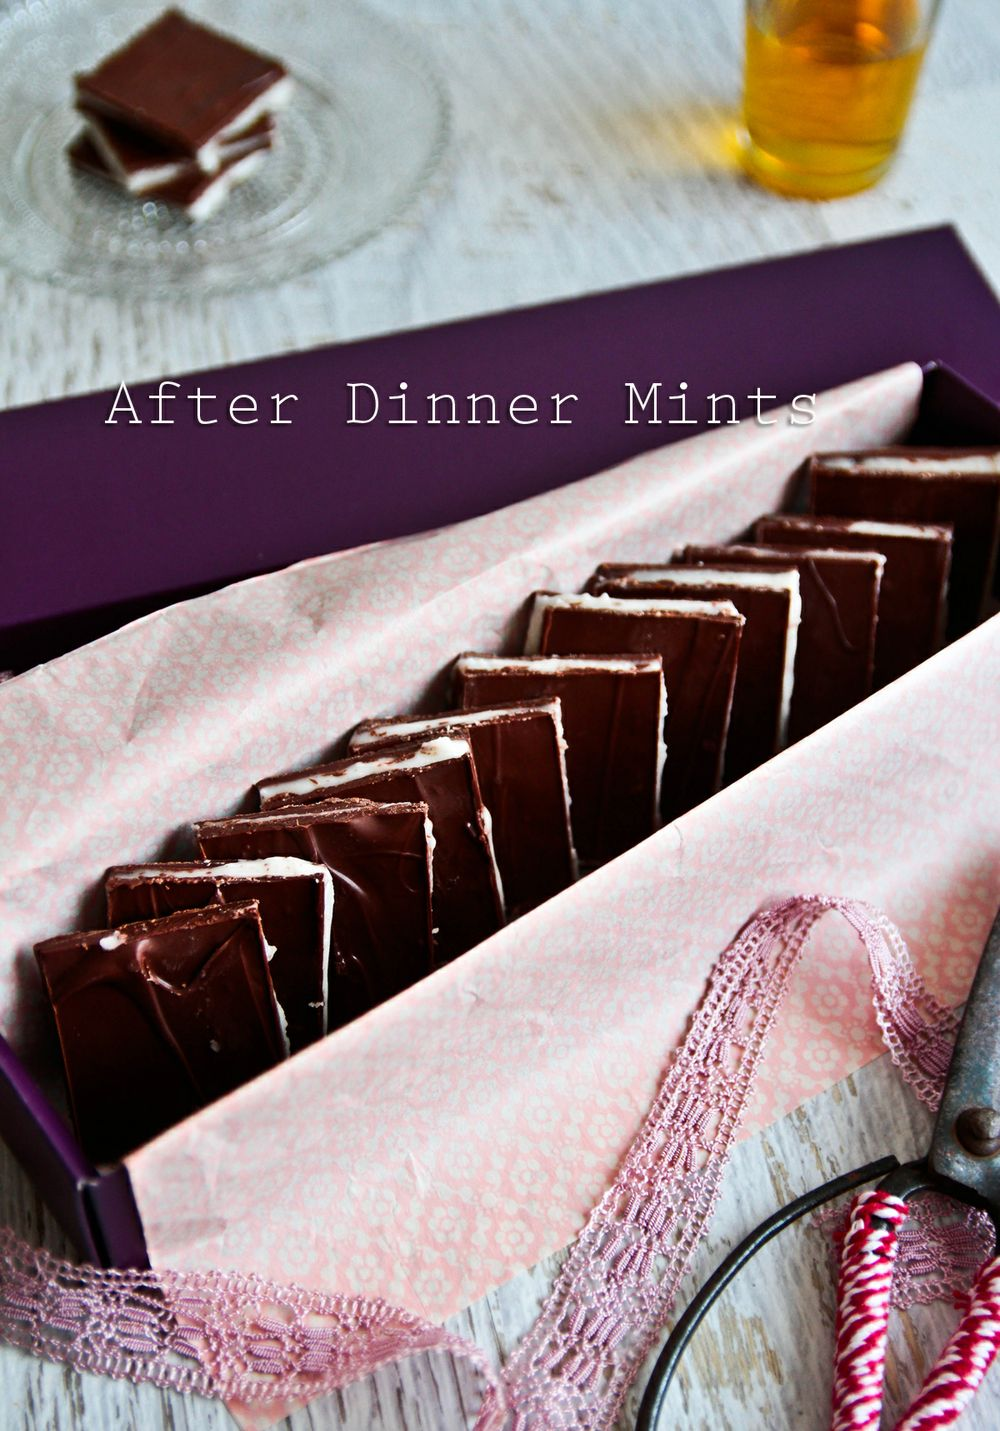 m-after-dinner-mints-recipe